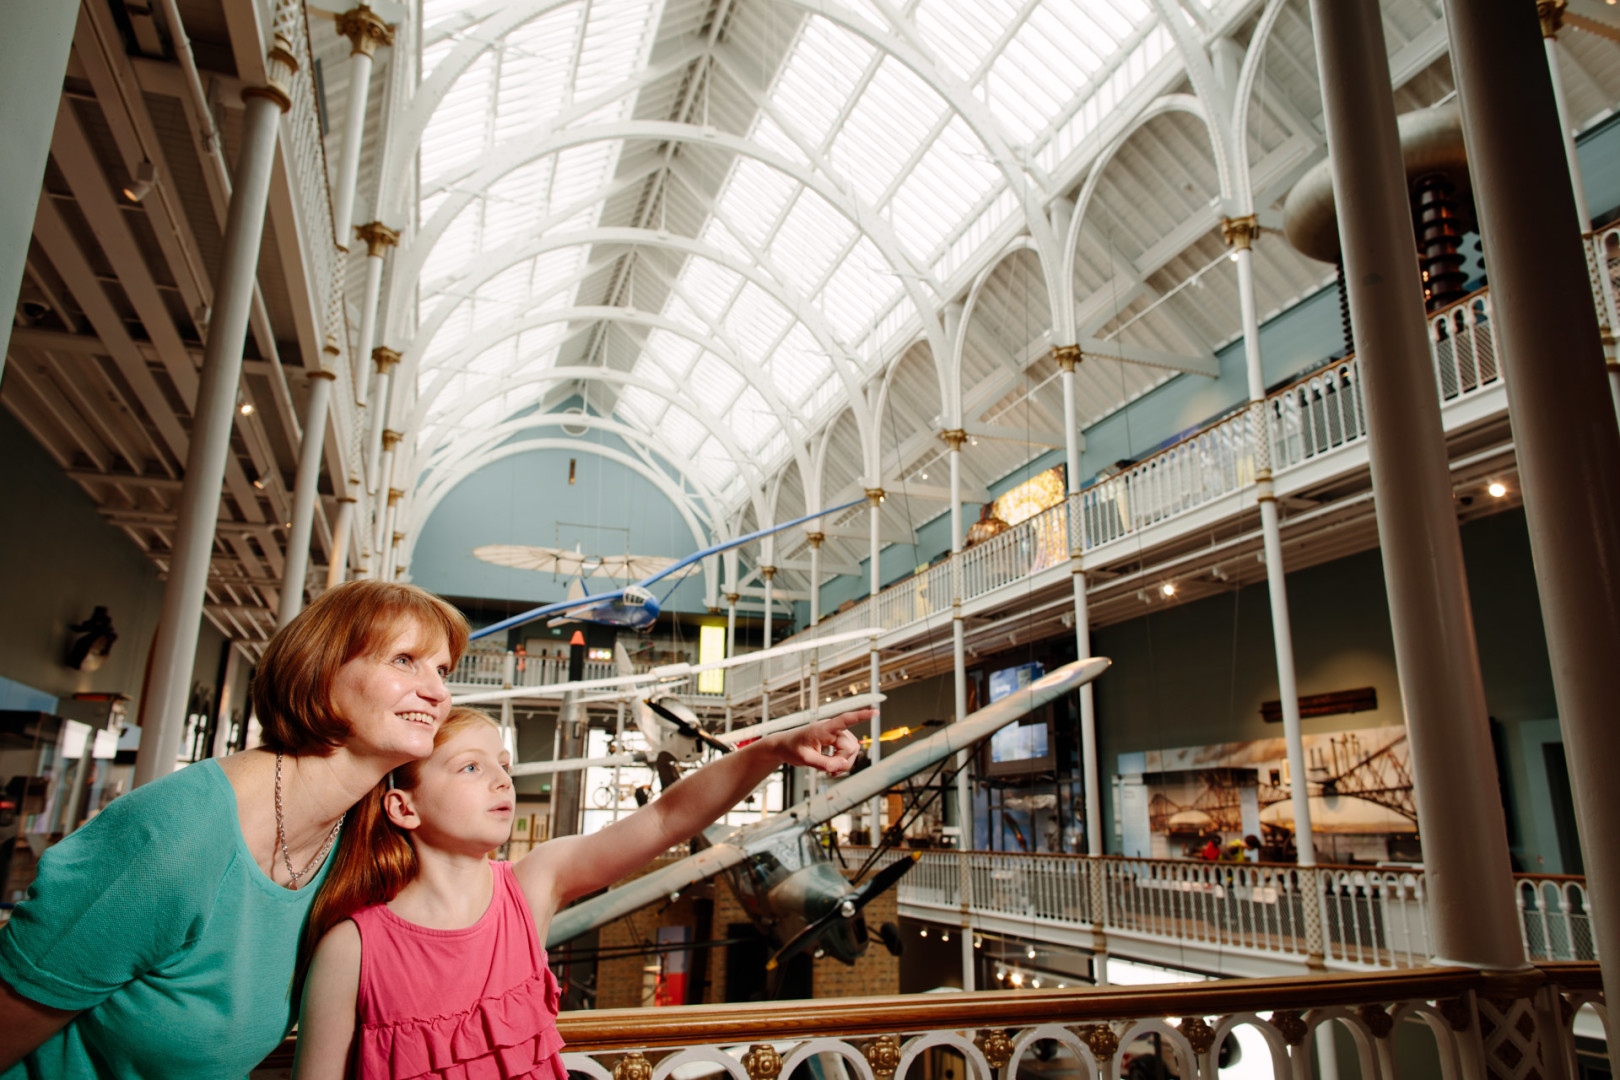 An amazing view of the planes suspended in the atrium